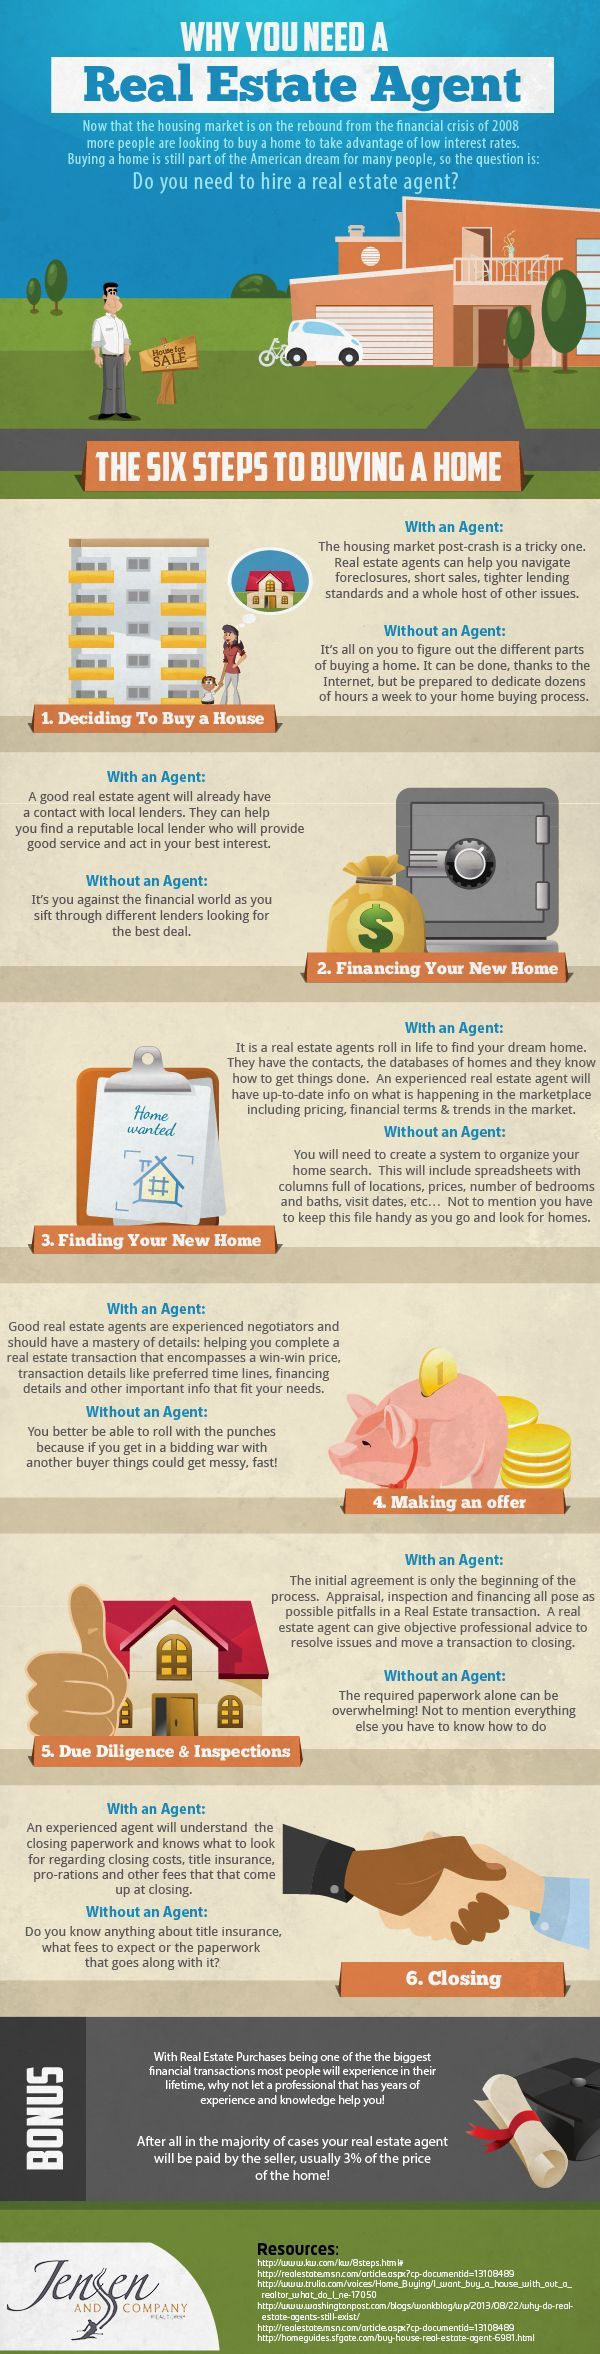 9 best Home Buying Tips images on Pinterest   Real estate business     Why You Need A Real Estate Agent Infographic  I m going to throw out